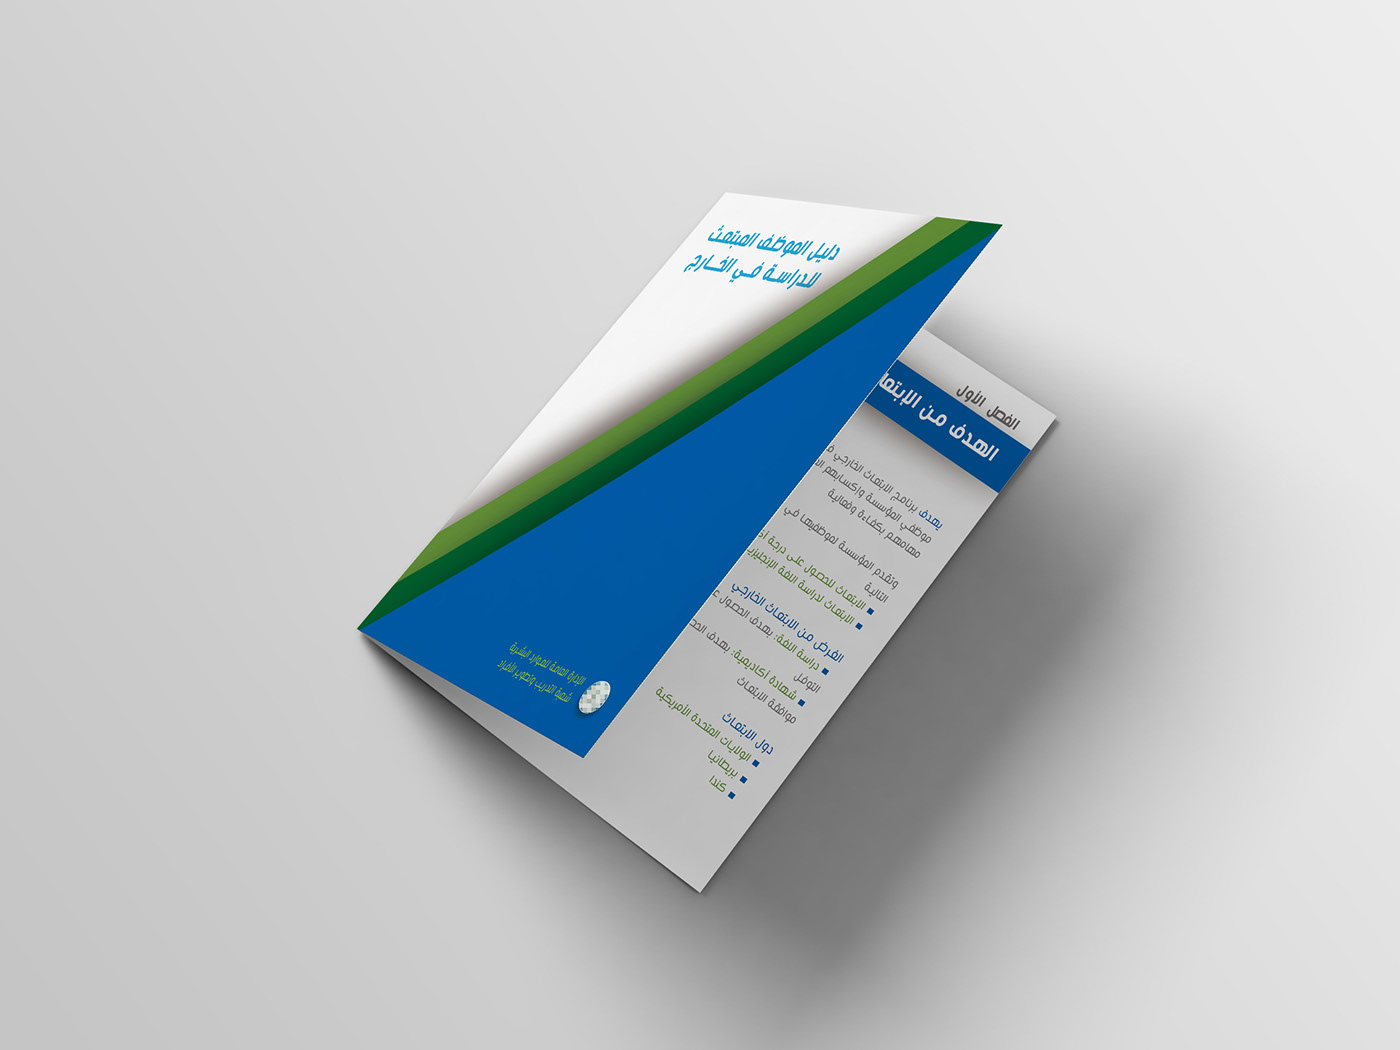 dreamdesigns a n scholarship guide for employees booklet design